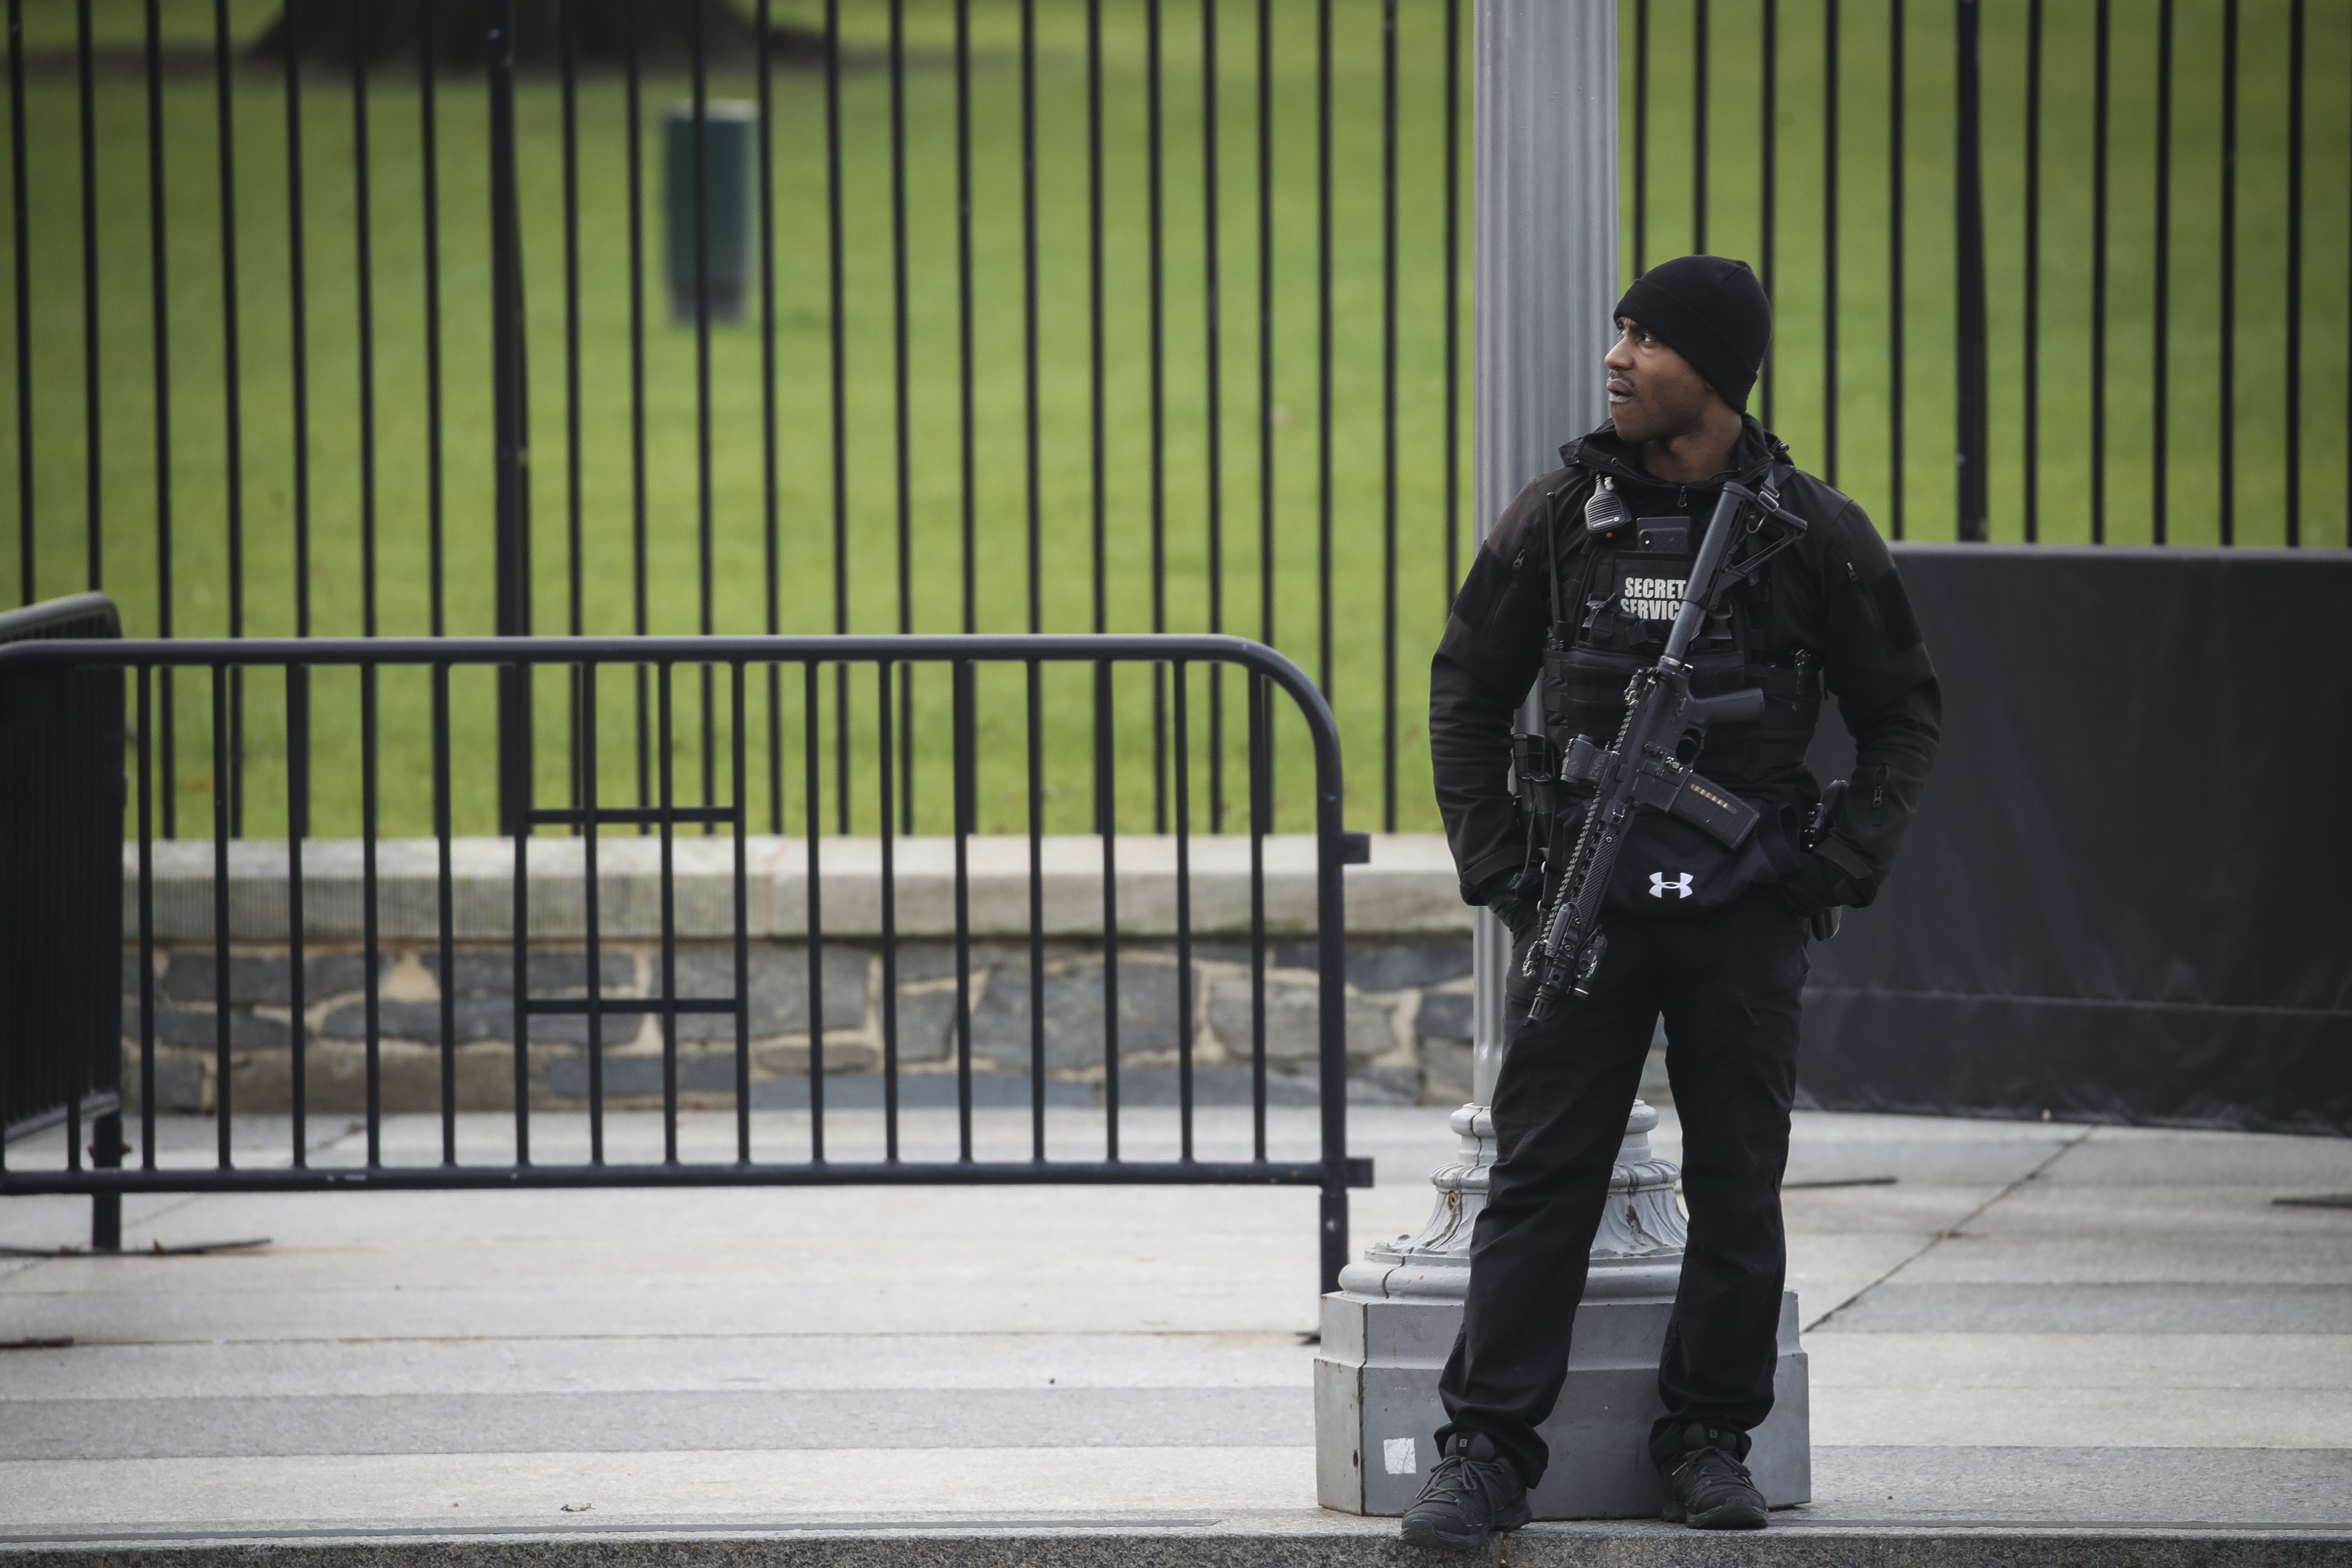 WASHINGTON, DC JANUARY 7: A member of the U.S. Secret Service walks stands guard outside of the White House on January 7, 2020 in Washington, DC. According to media reports, the White House is adding extra security; including additional Secret Service agents and greater scrutiny of visitors following President Trump's killing of Iranian General Qasem Soleimani. (Photo by Drew Angerer/Getty Images)